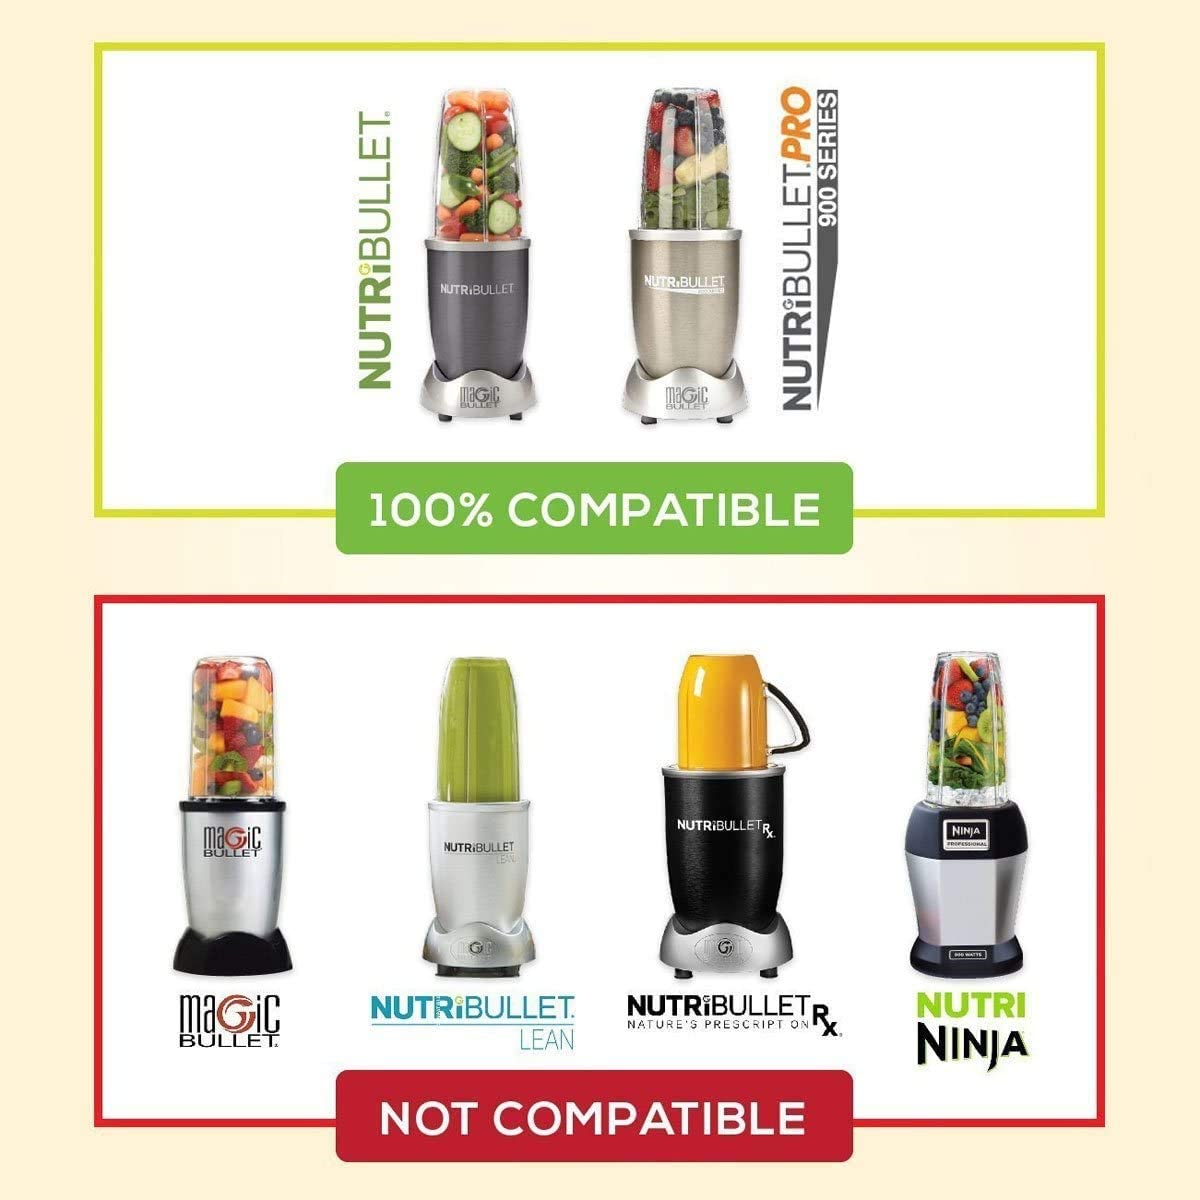 Extractor Blade Replacement Parts /& Cups /& Drive wheel /& Top Gear /& Gaskets /& Shock Pad Replacement Parts for NutriBullet Blender Accessories 600W//900W Series